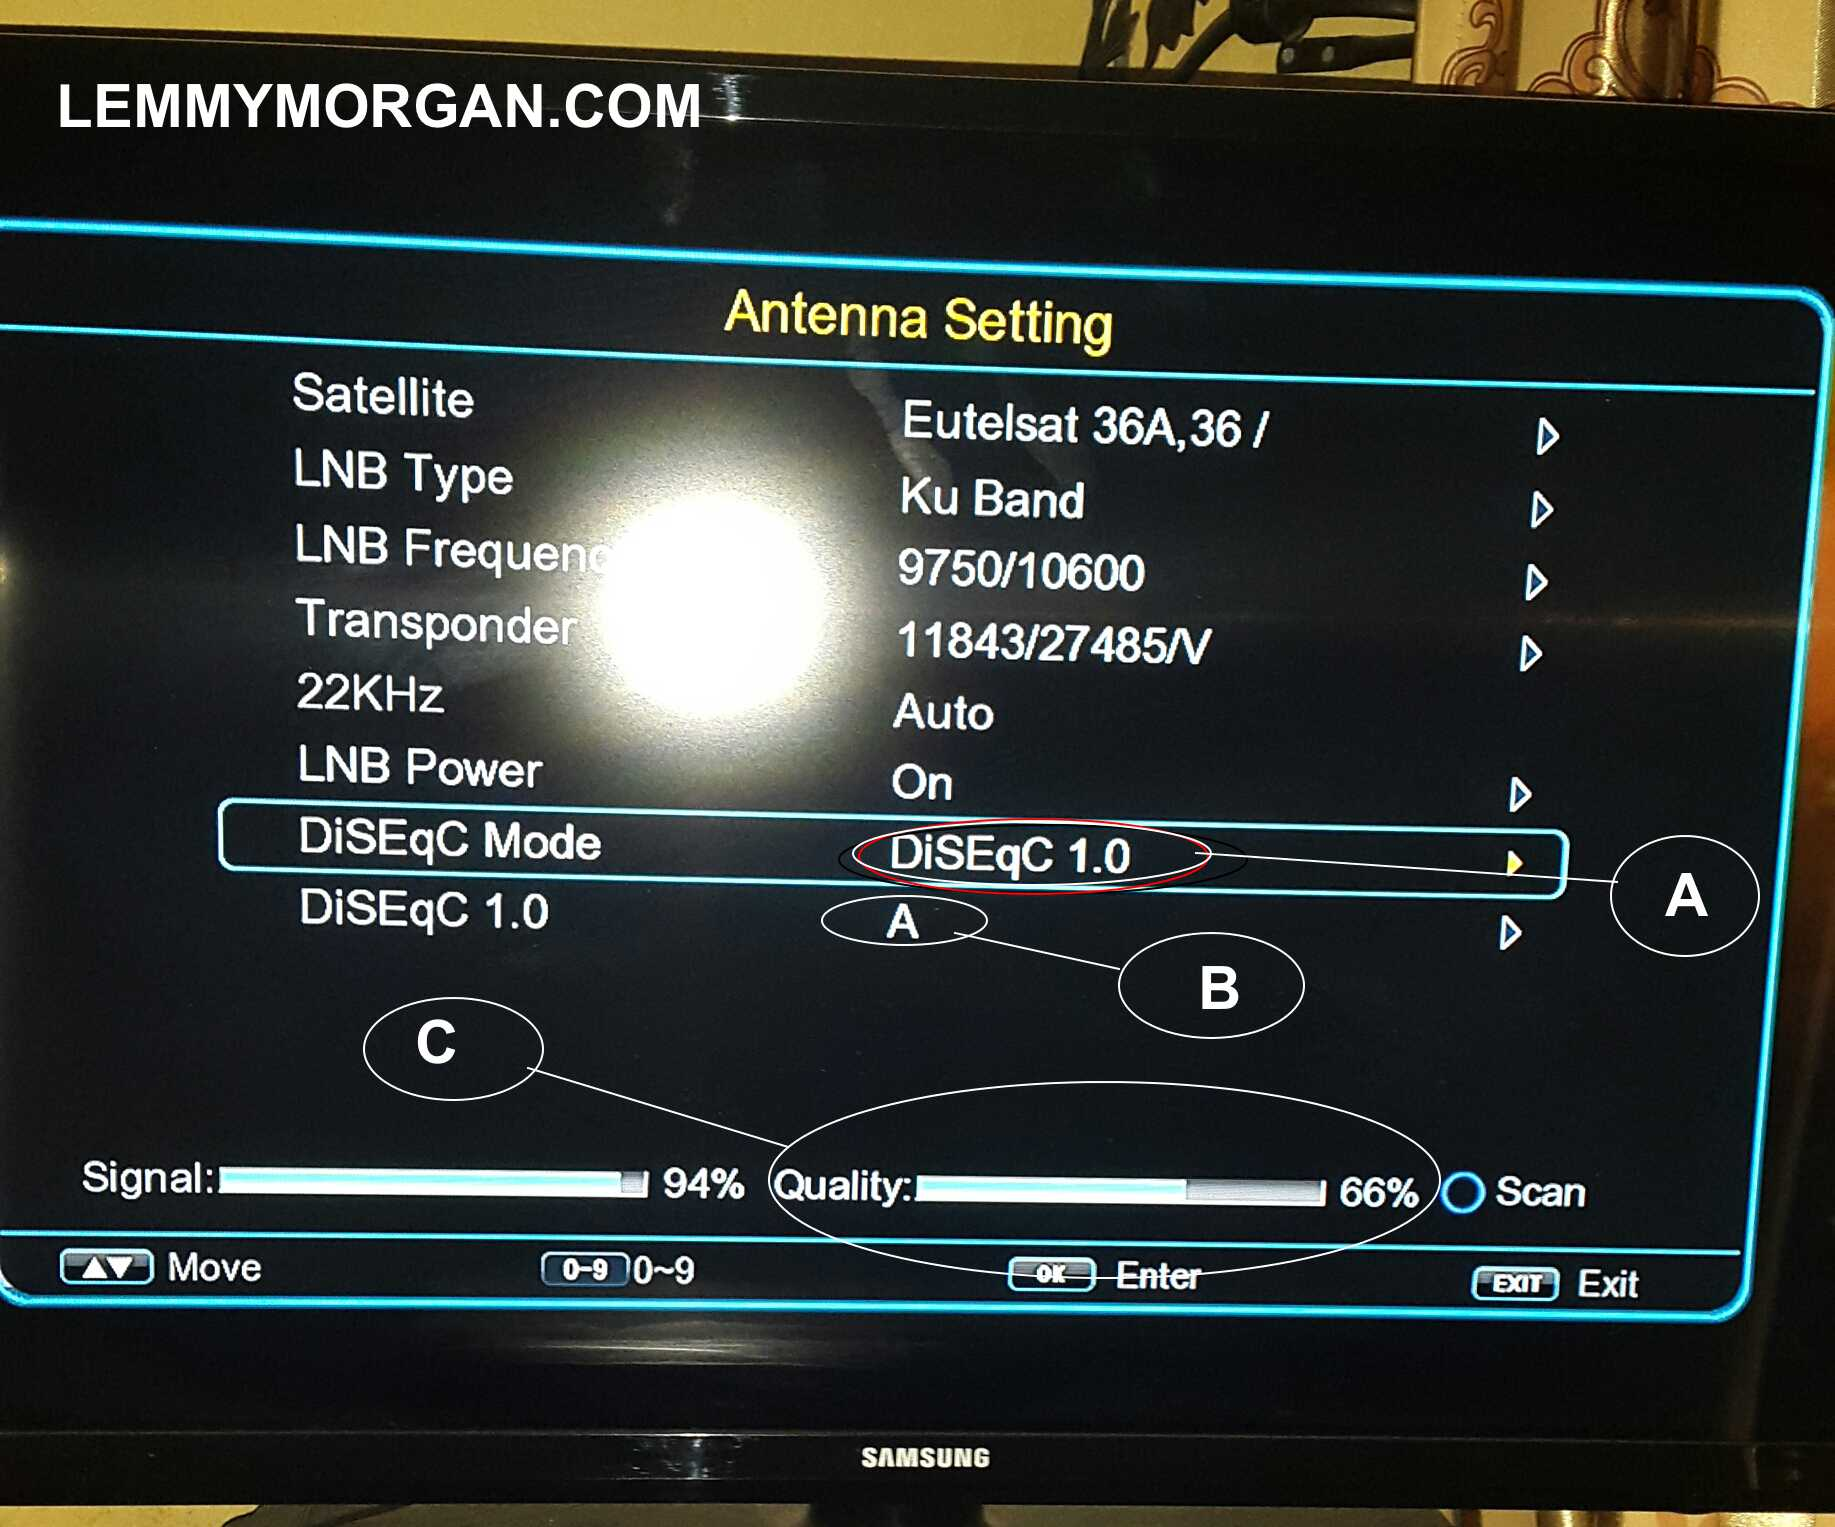 How to Setup a DiSEqC Switch and Connect Multiple Dishes to